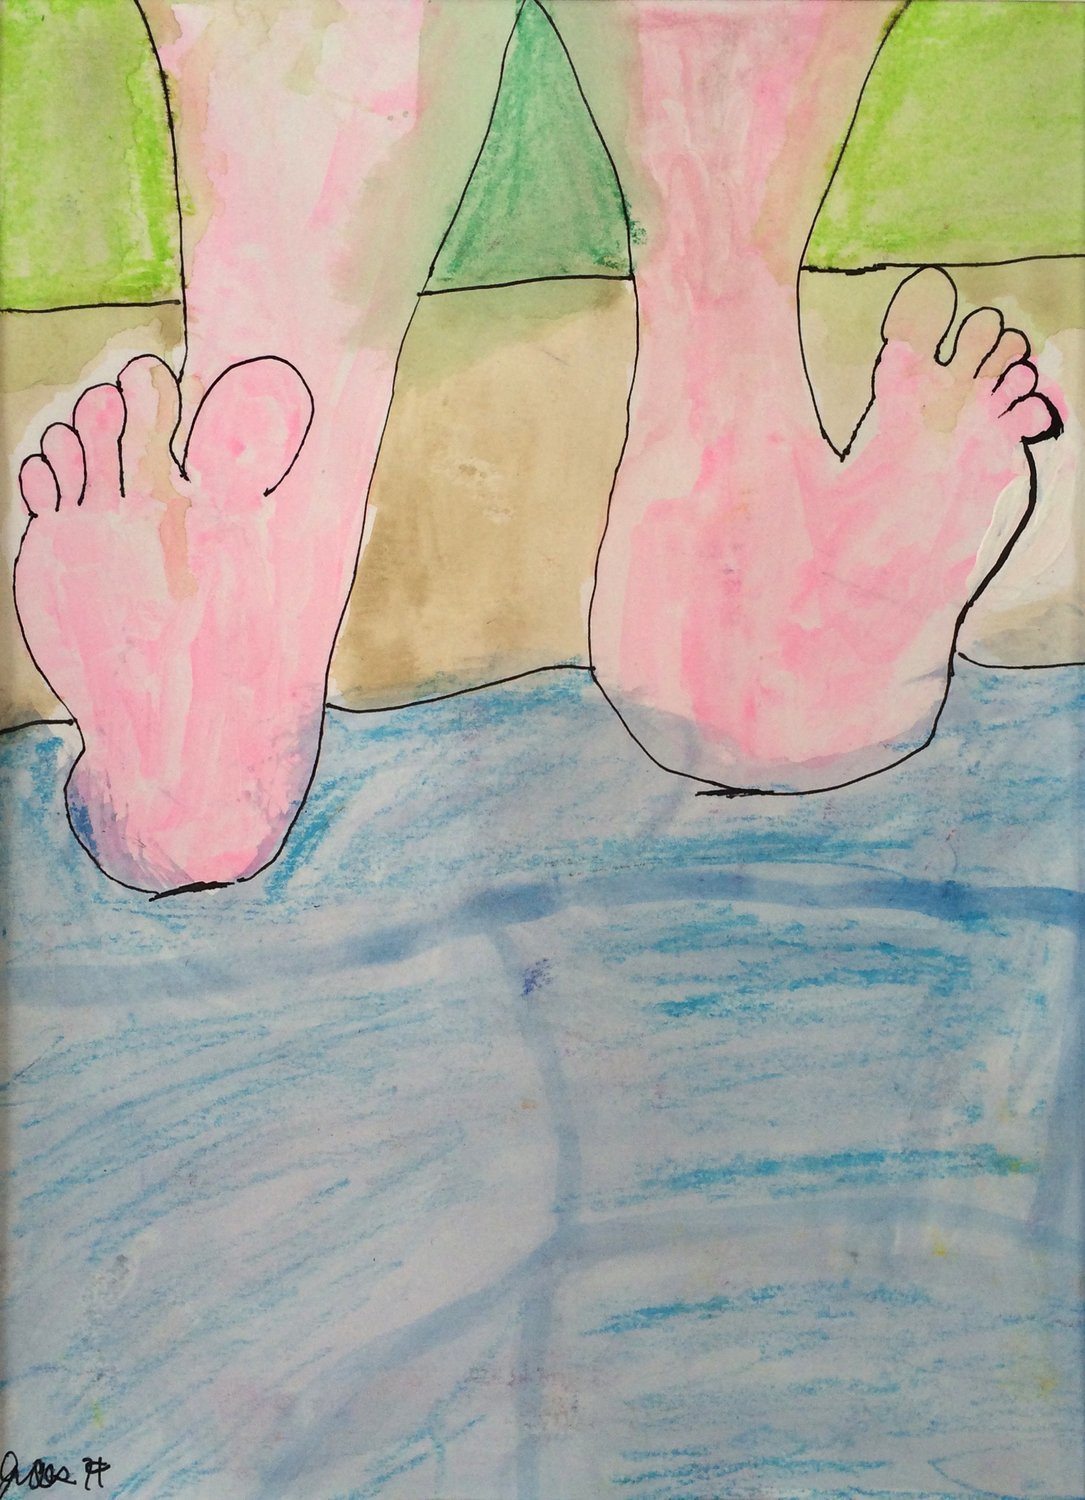 Feet Breathing II